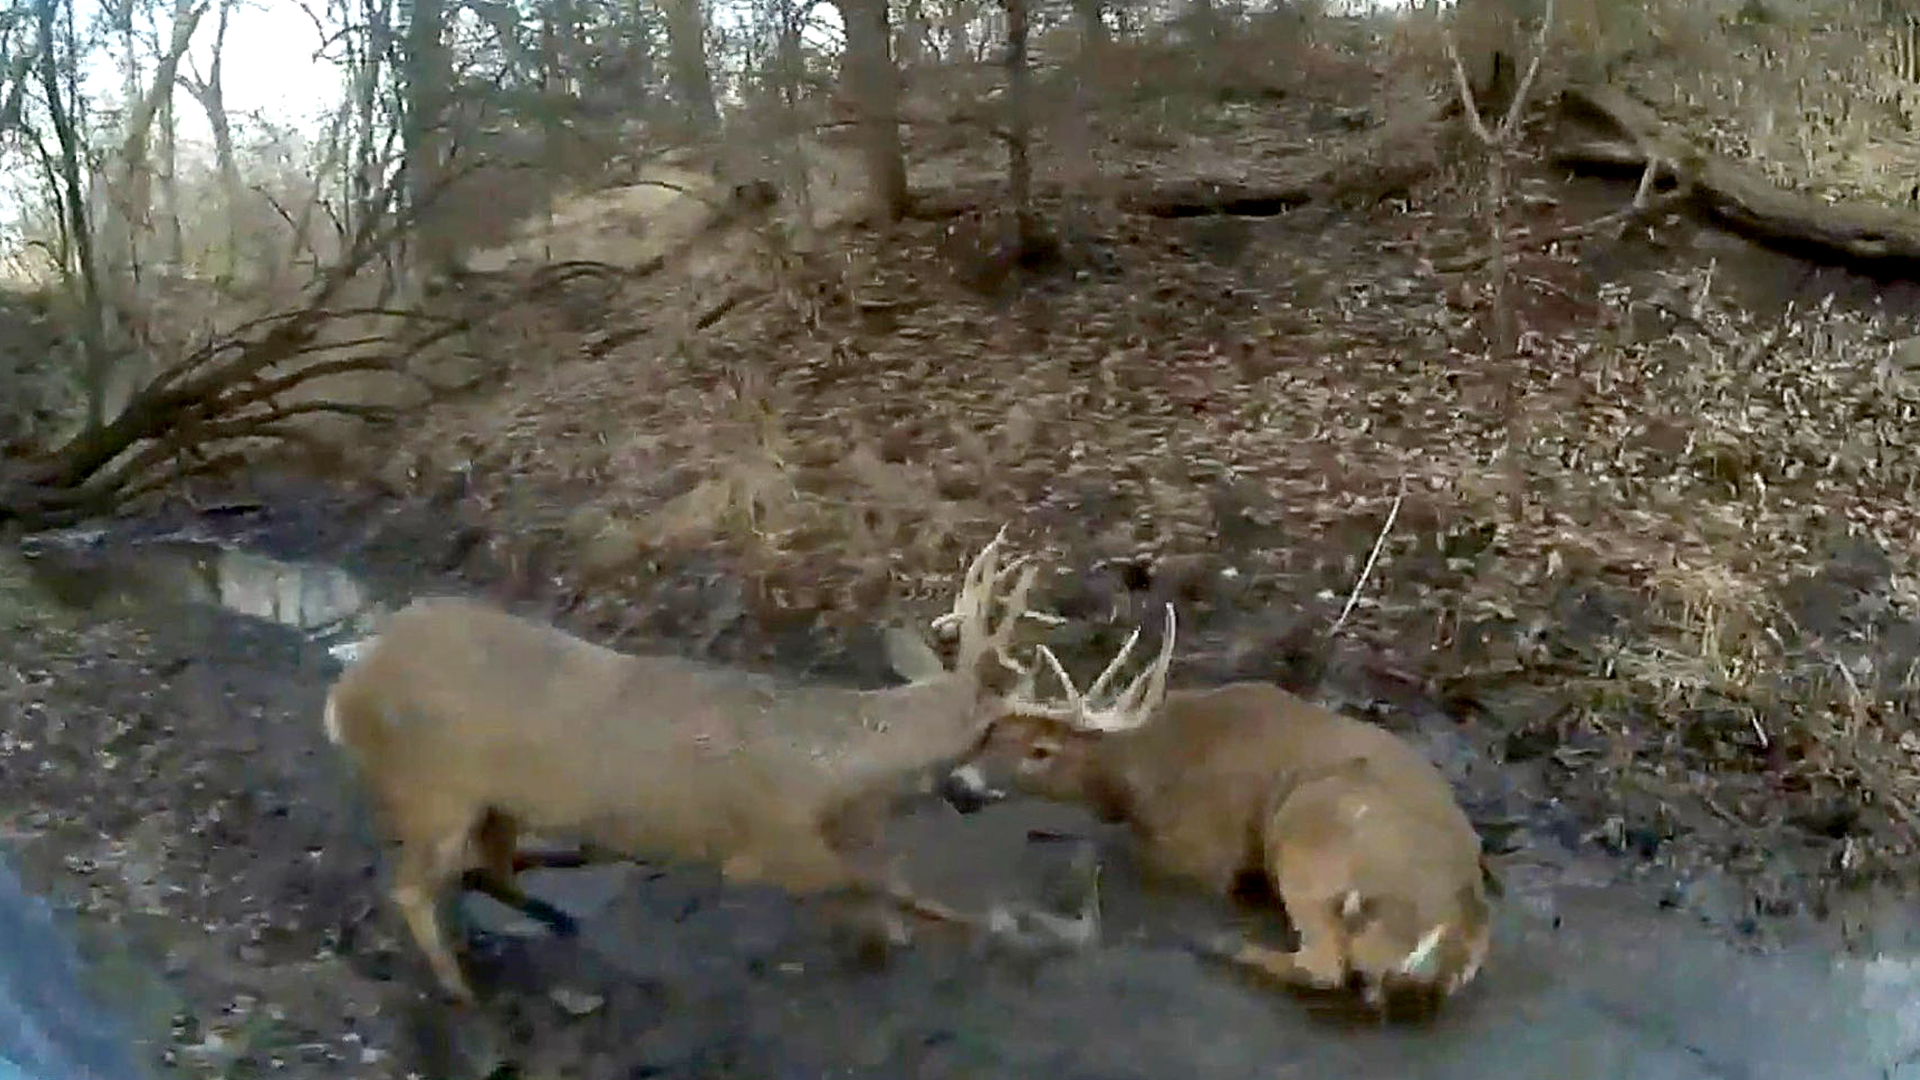 Game warden shoots at antler to save two entangled deer